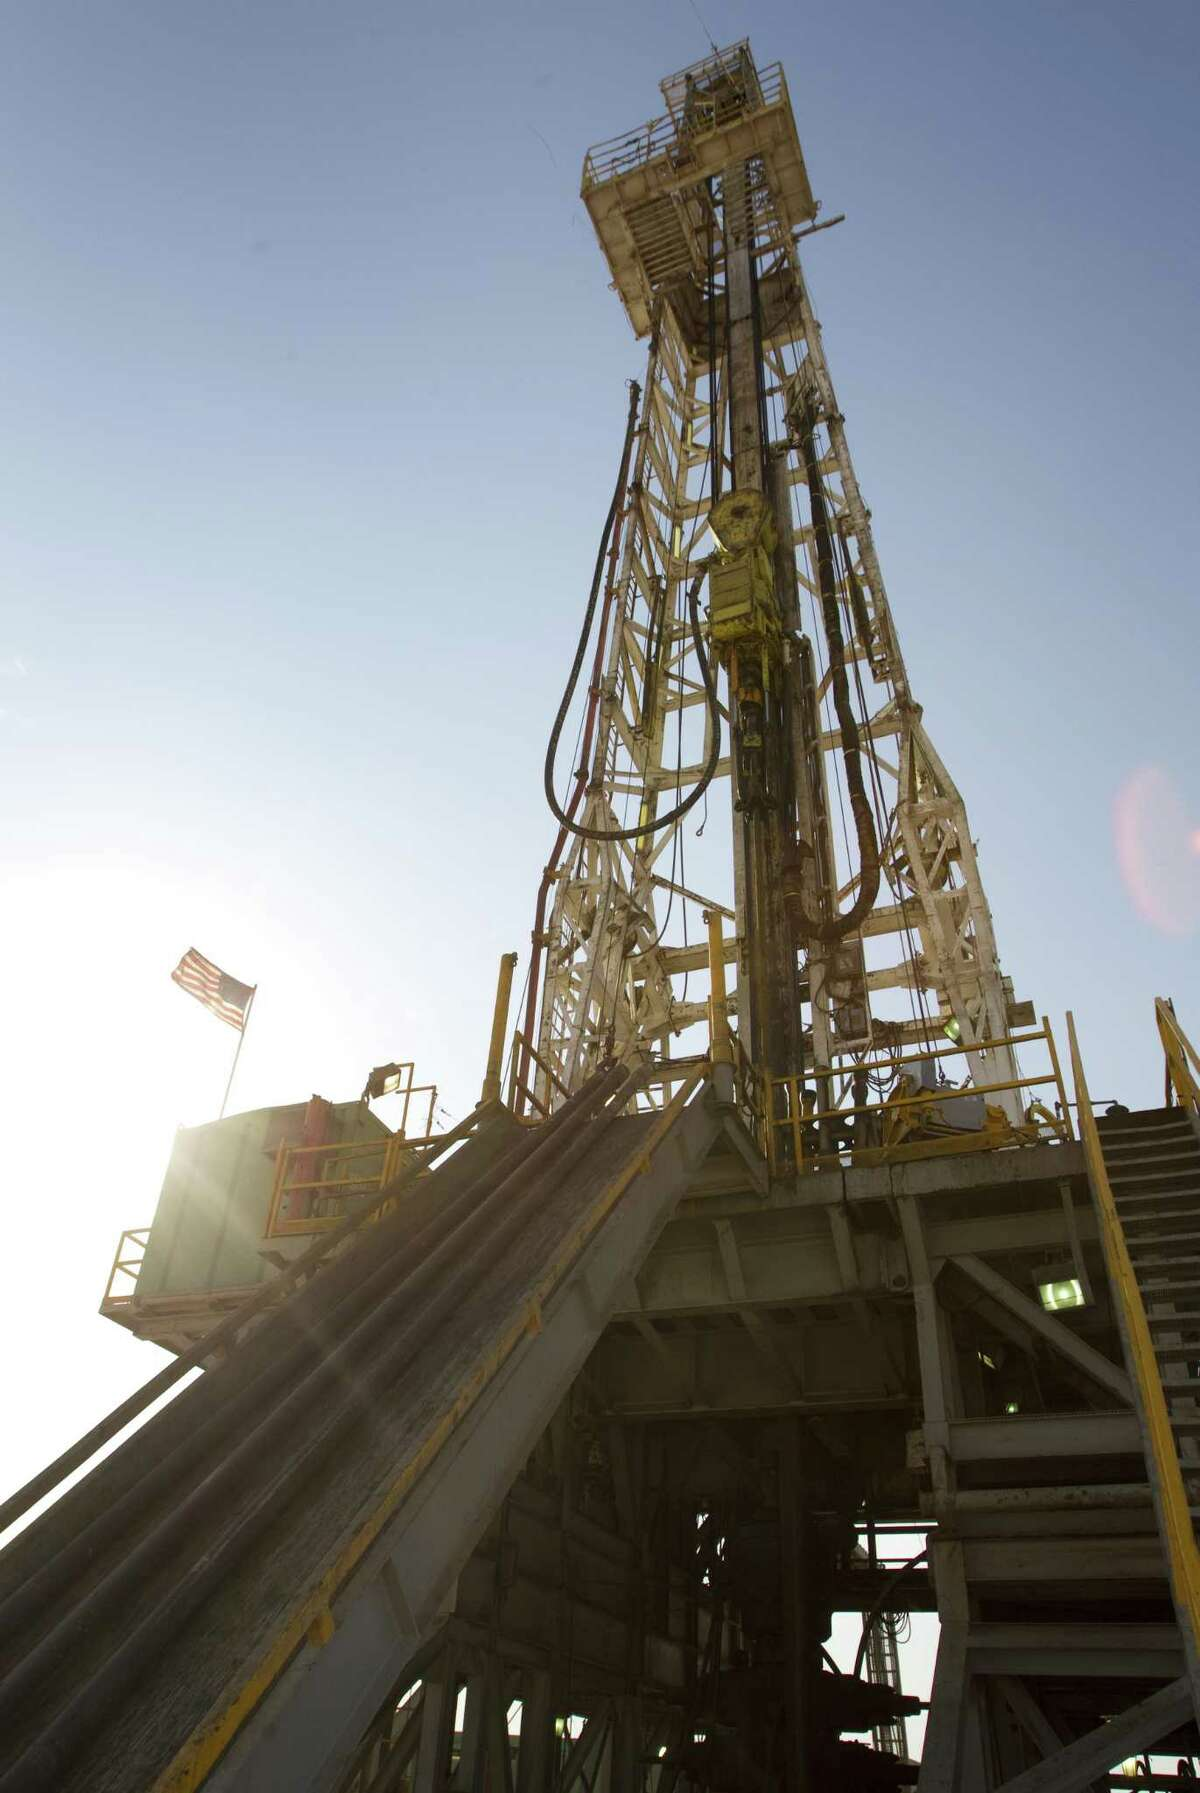 The nation's oil rig count ticked up slightly as drilling activity in the Permian Basin ramped up.